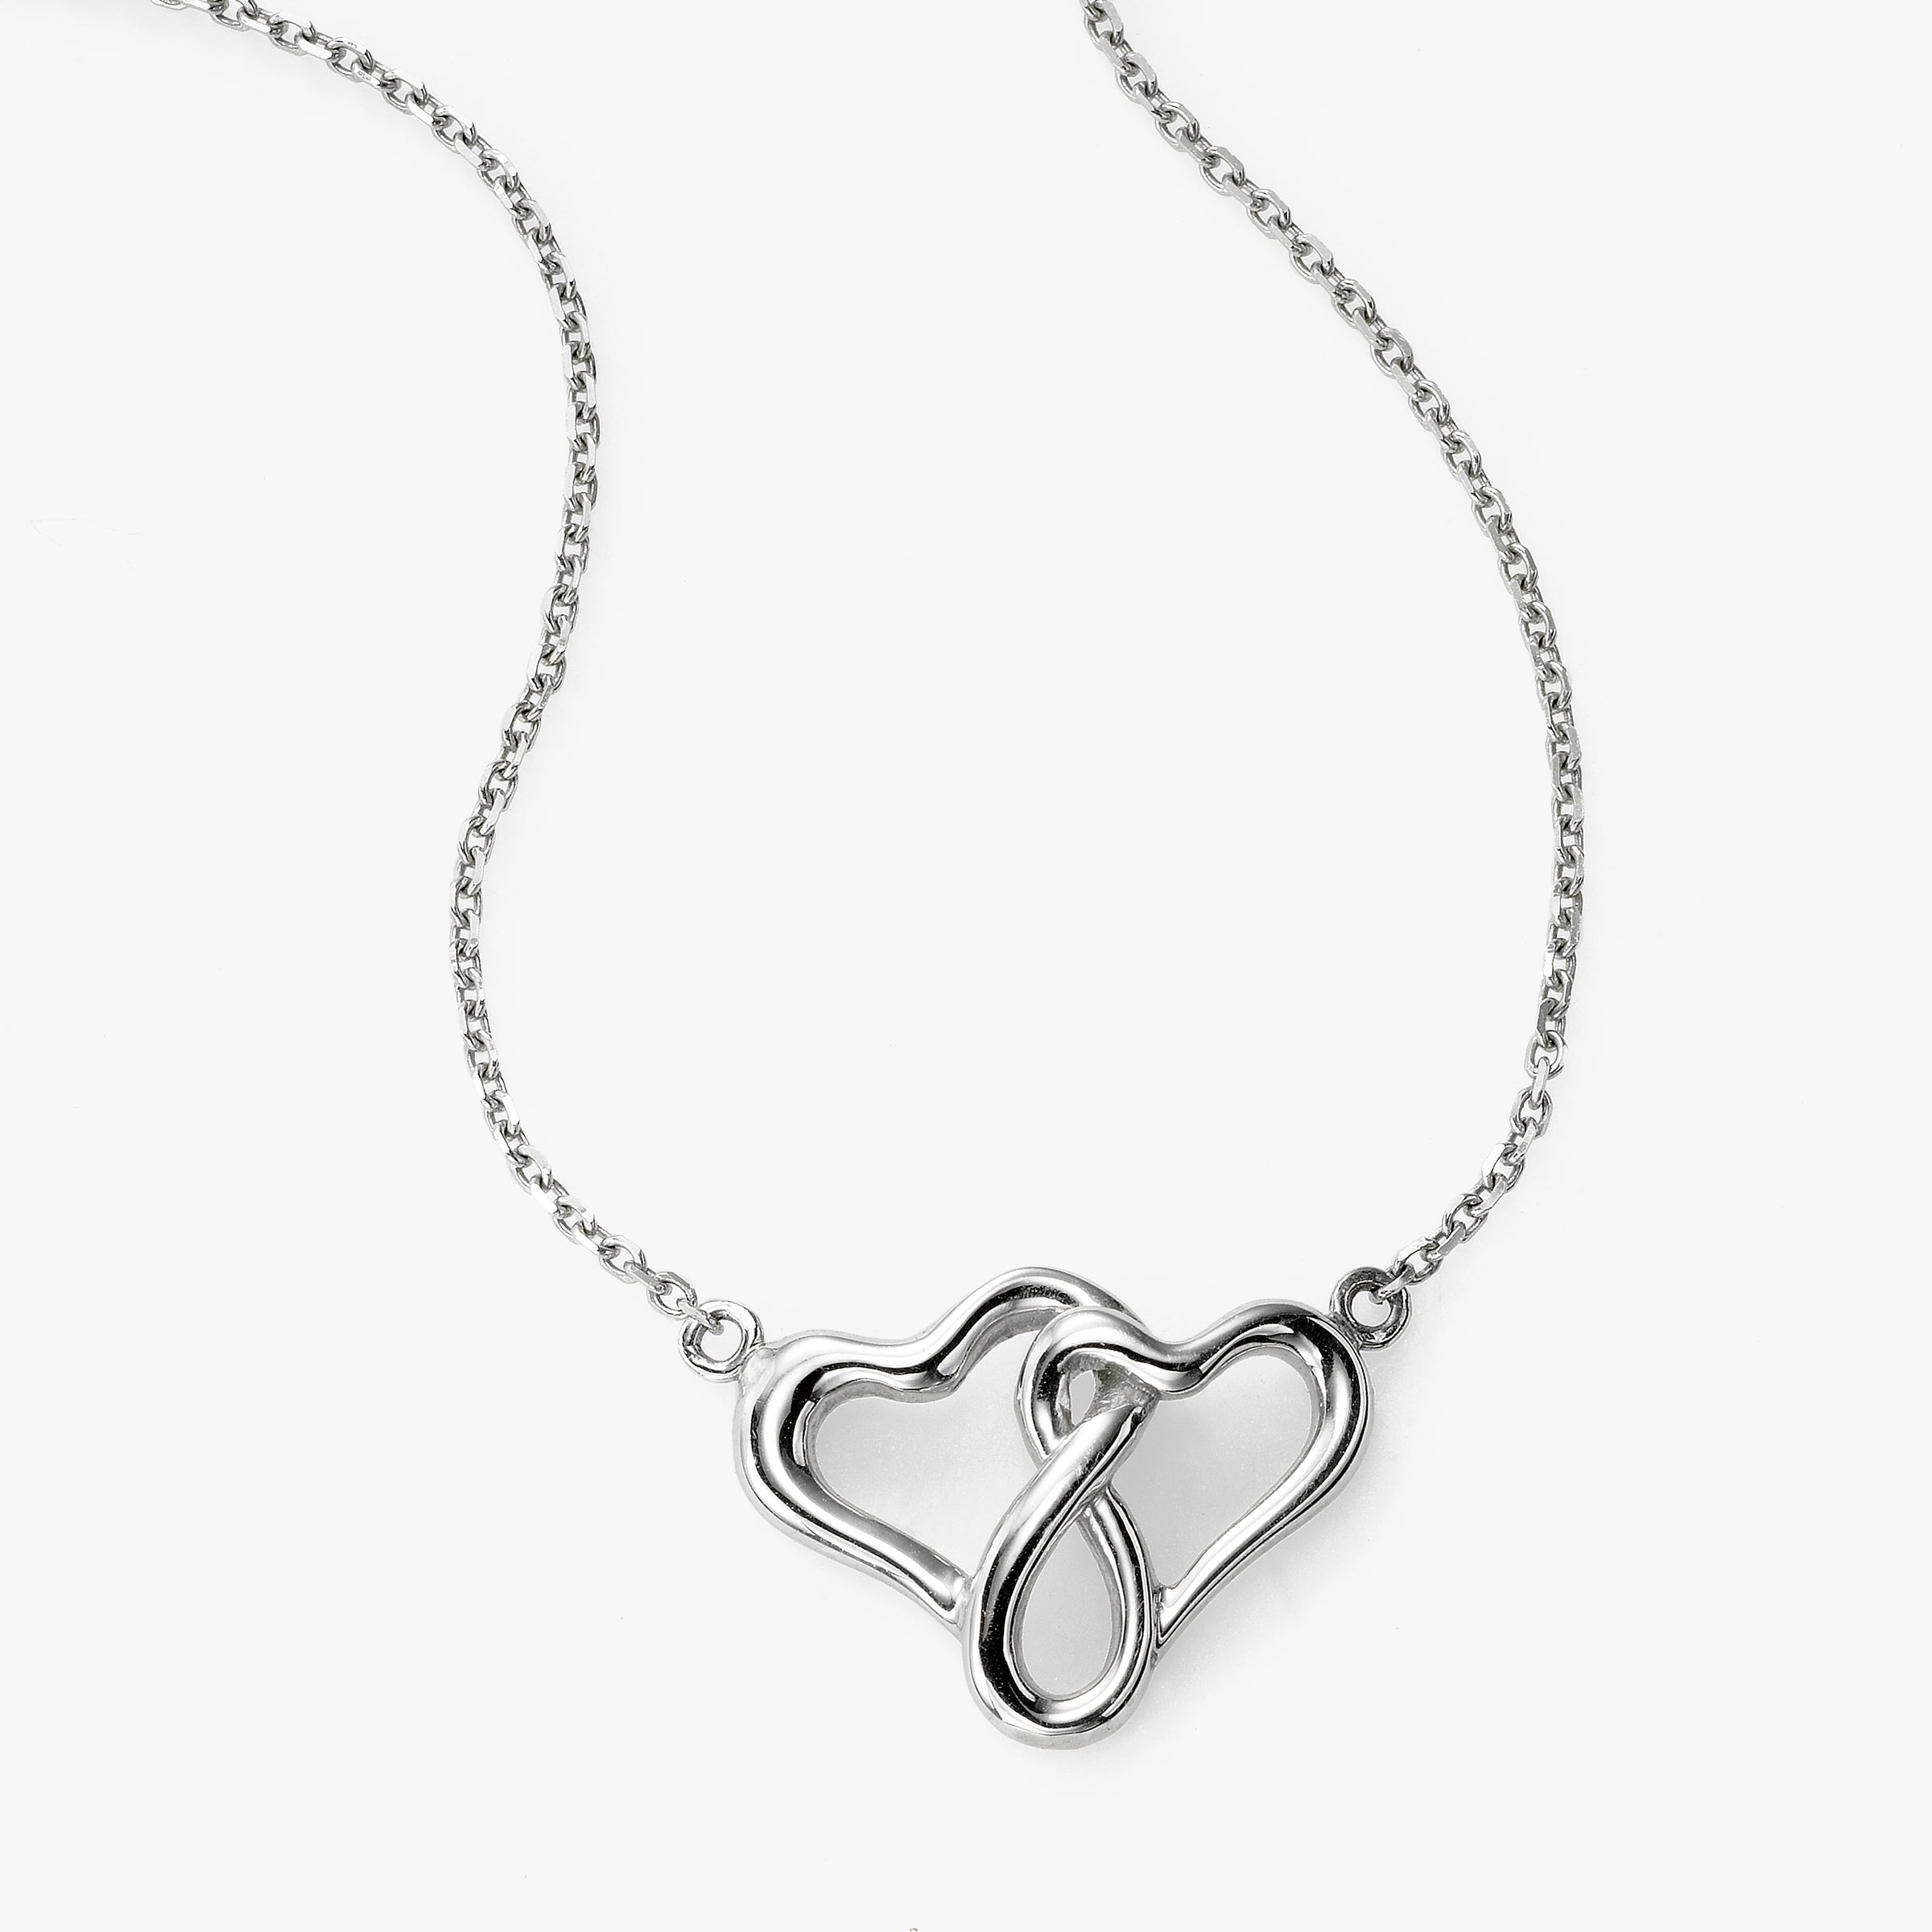 Happy Hearts Necklace, 16 Inches, 14K White Gold